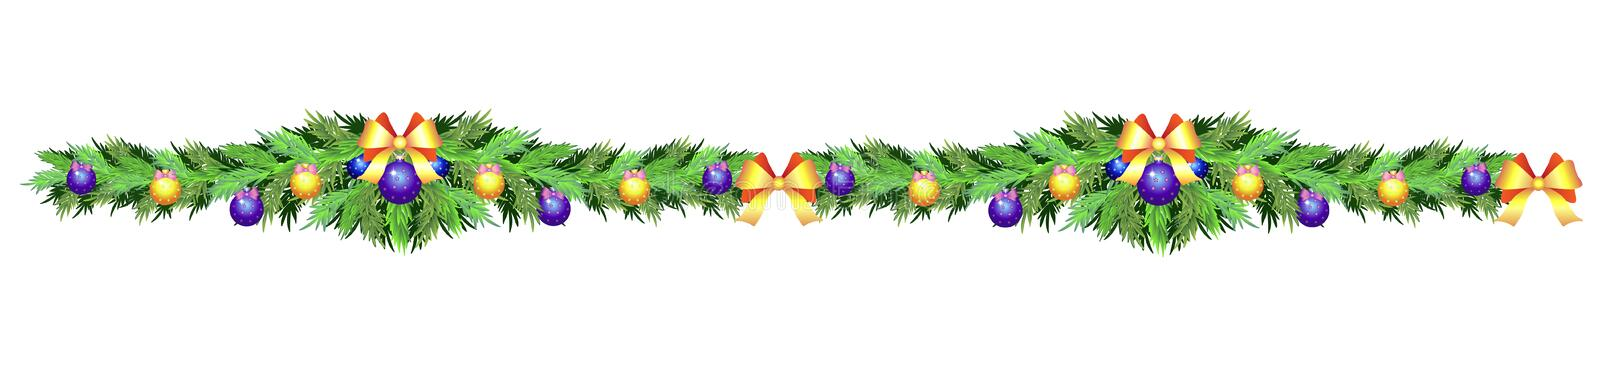 Christmas garland of fir branches, ribbons, Christmas balls - seamless divider, border for decorating sites, cards, banners. royalty free illustration